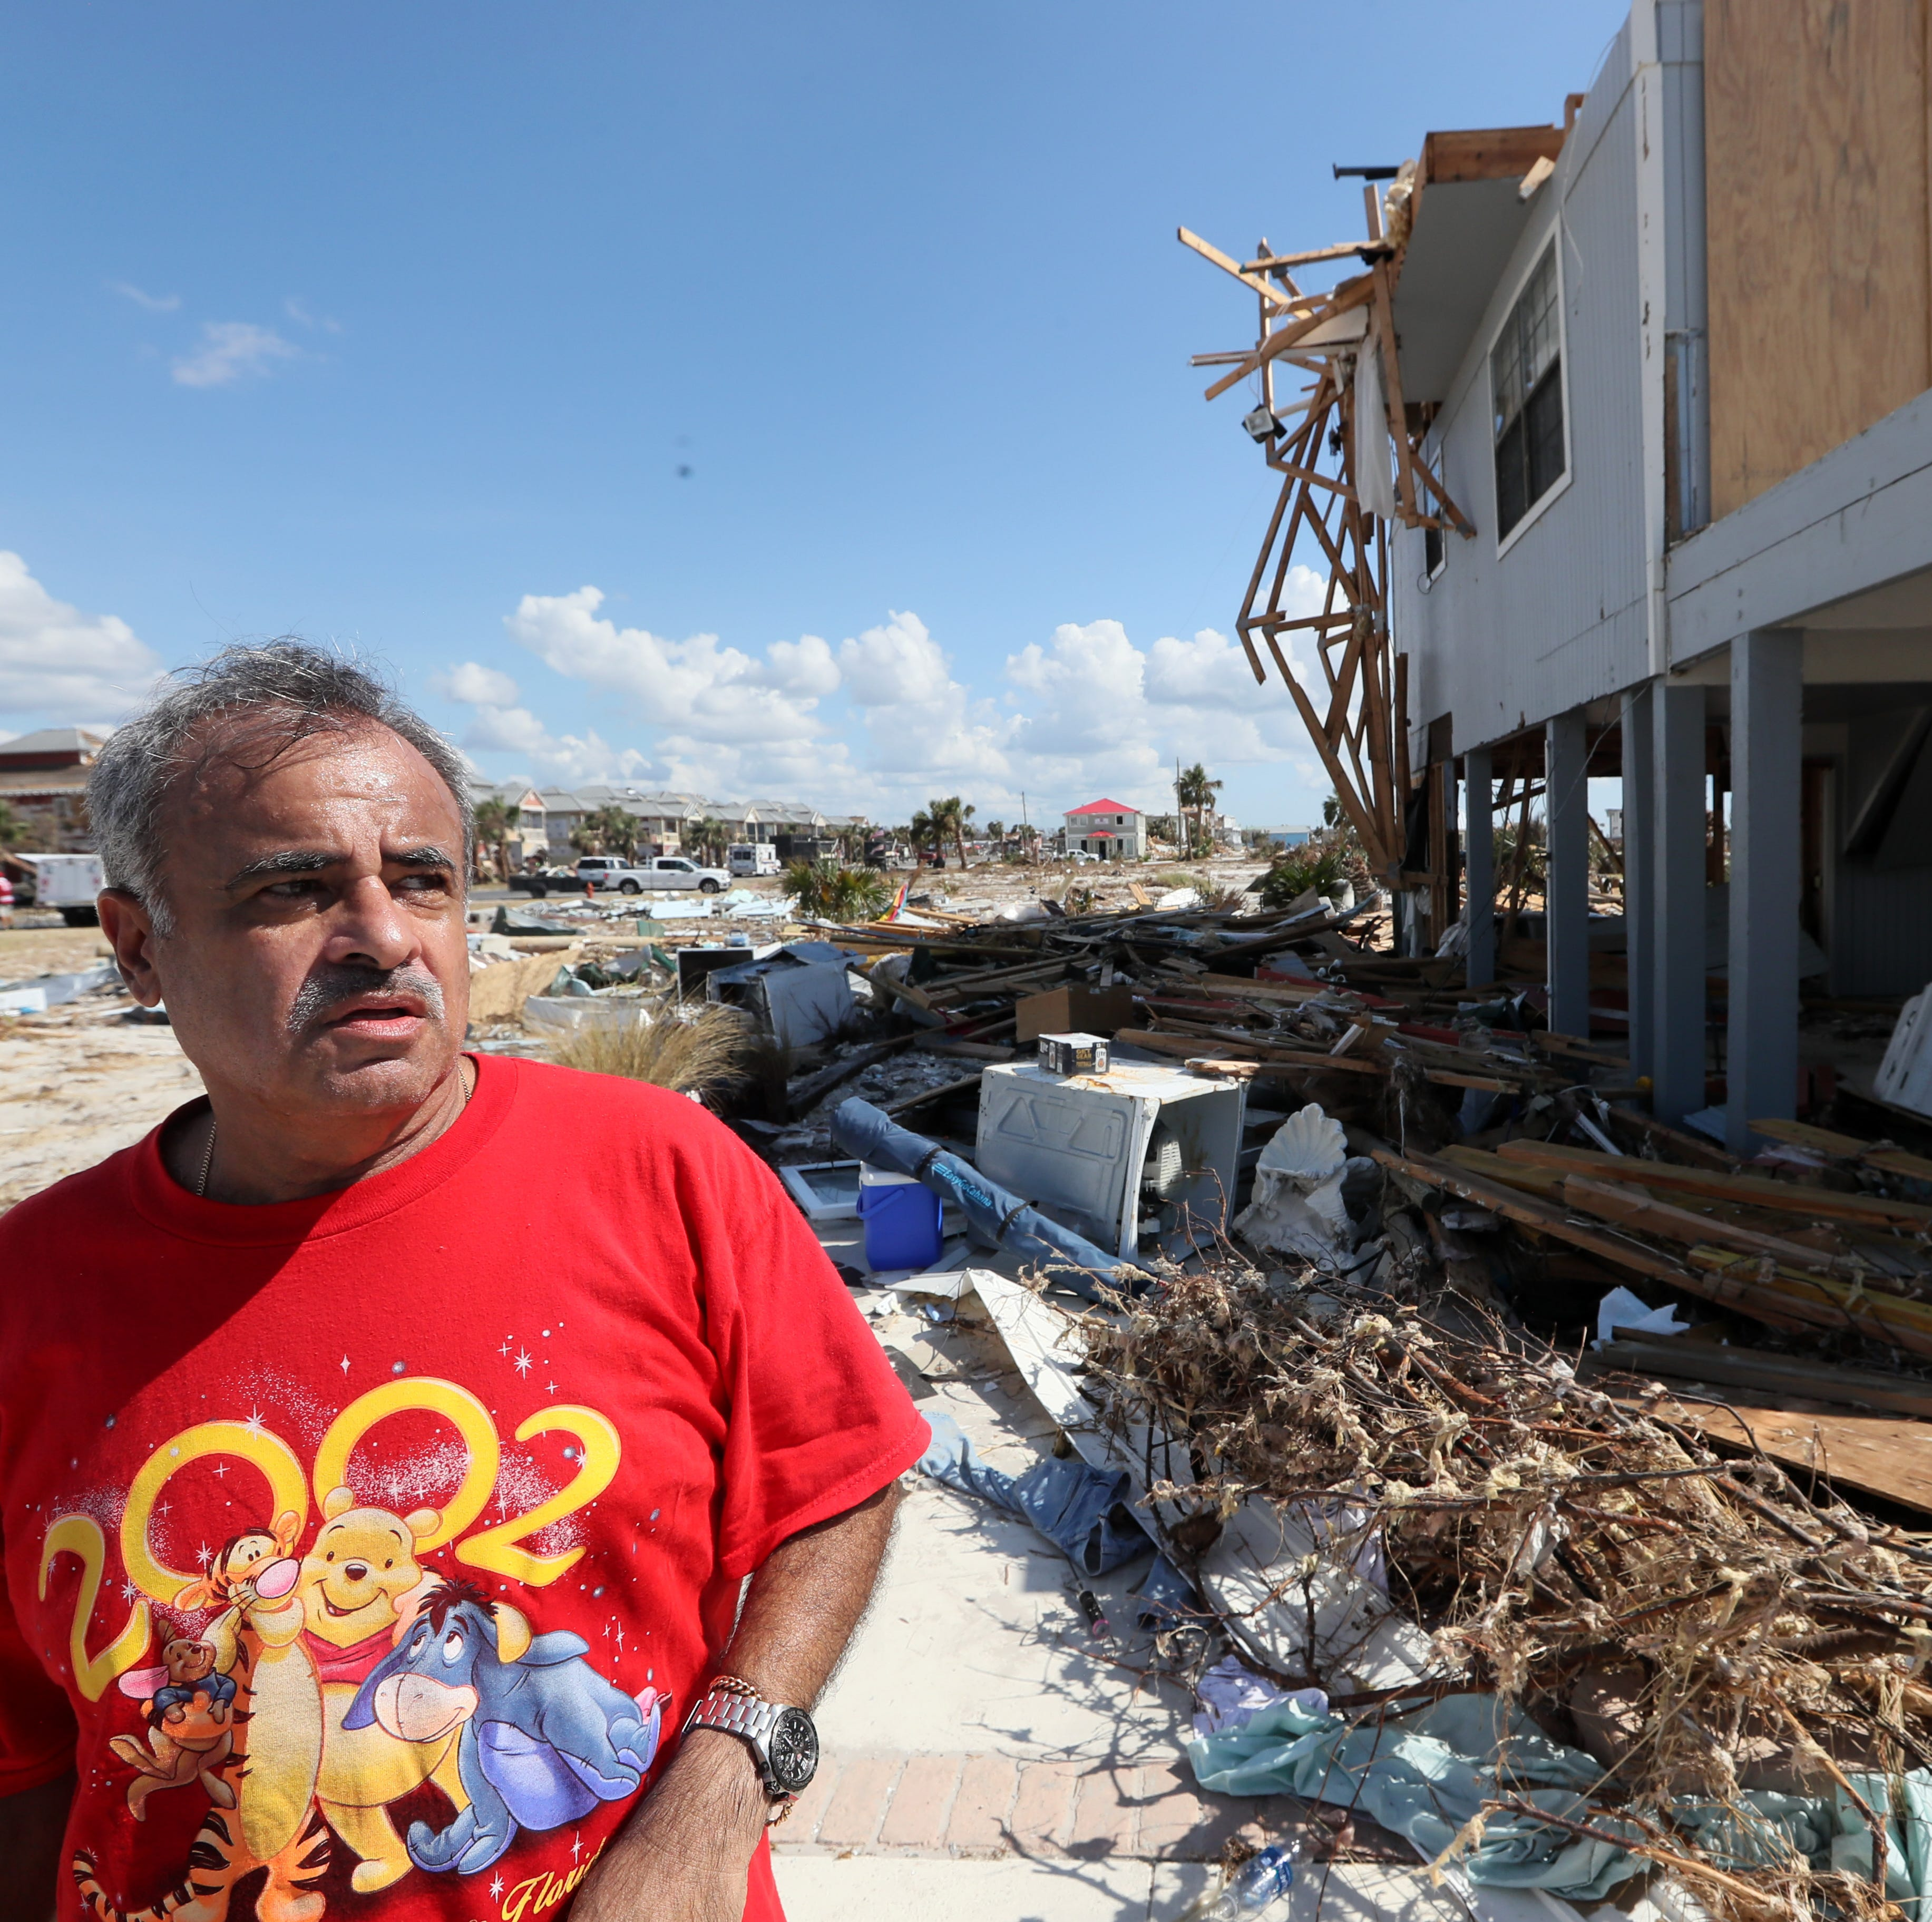 Jaques Sebastiao stands outside of his demolished Mexico Beach home on Wednesday, Oct. 17, 2018, one week after Hurricane Michael ripped through the coastal Florida town. Sebastiao moved in to the home fulltime with his with wife Bela two months ago.